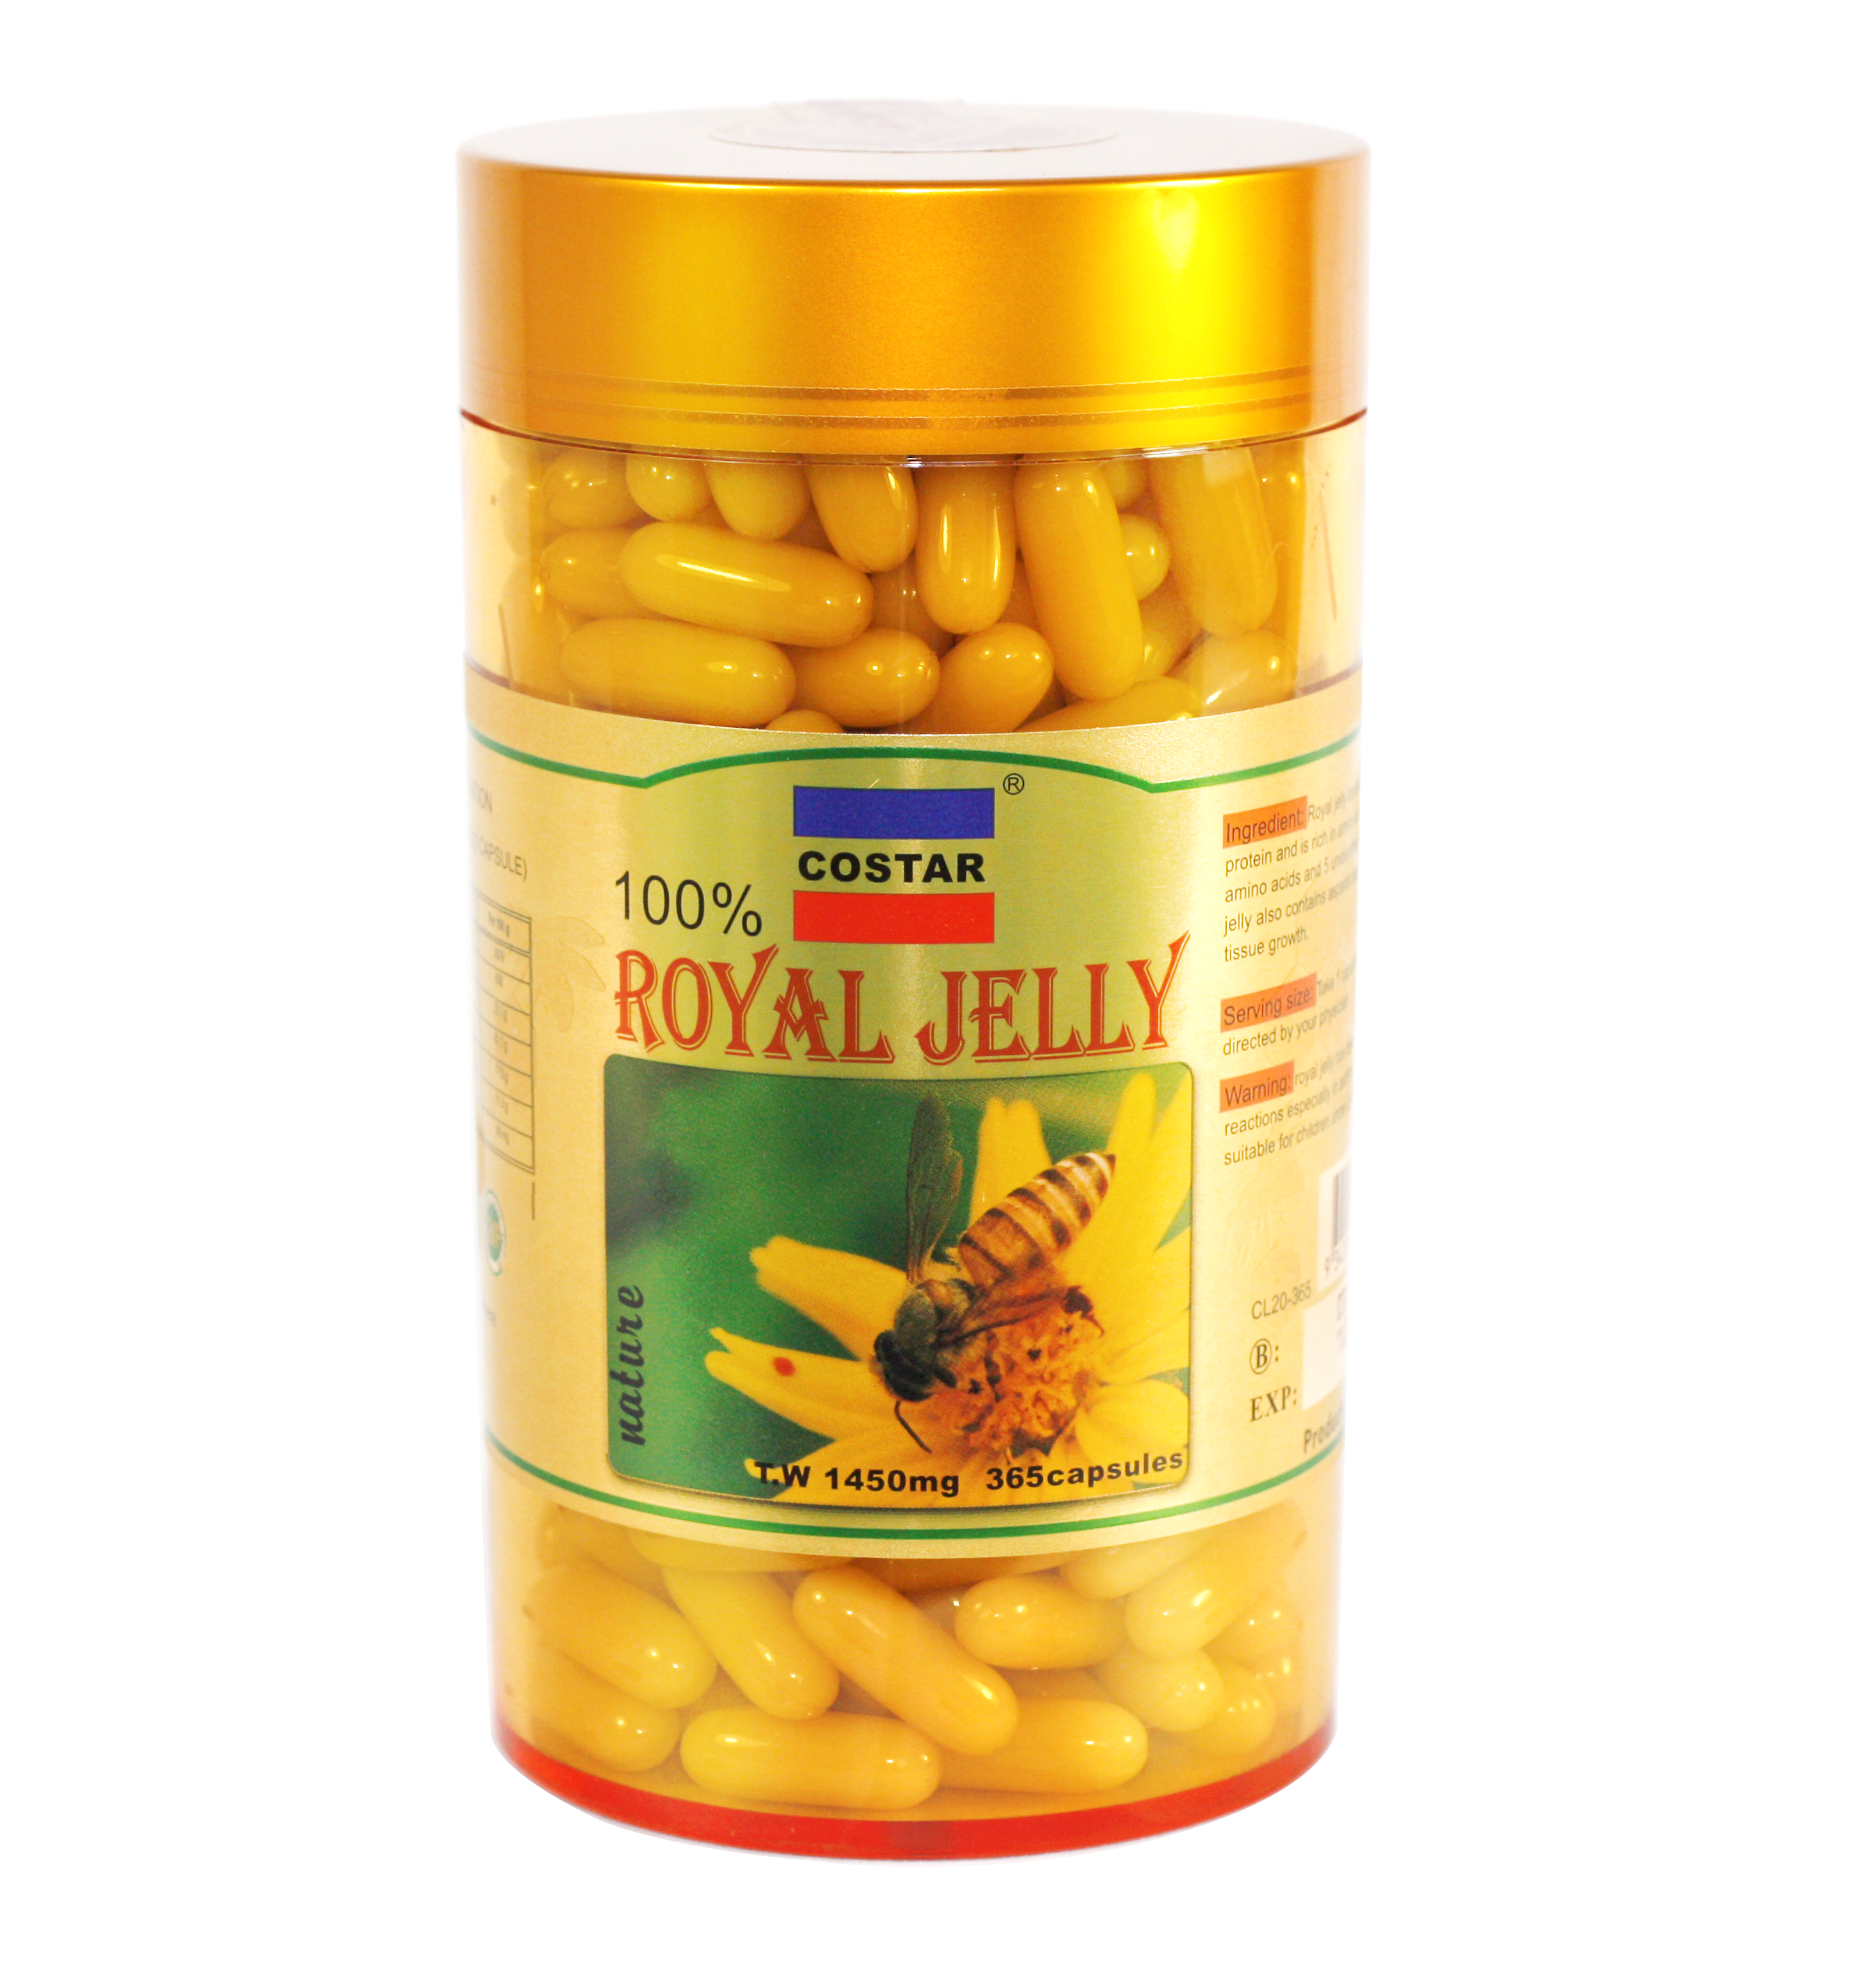 Costar Royal jelly 1450mg 365s